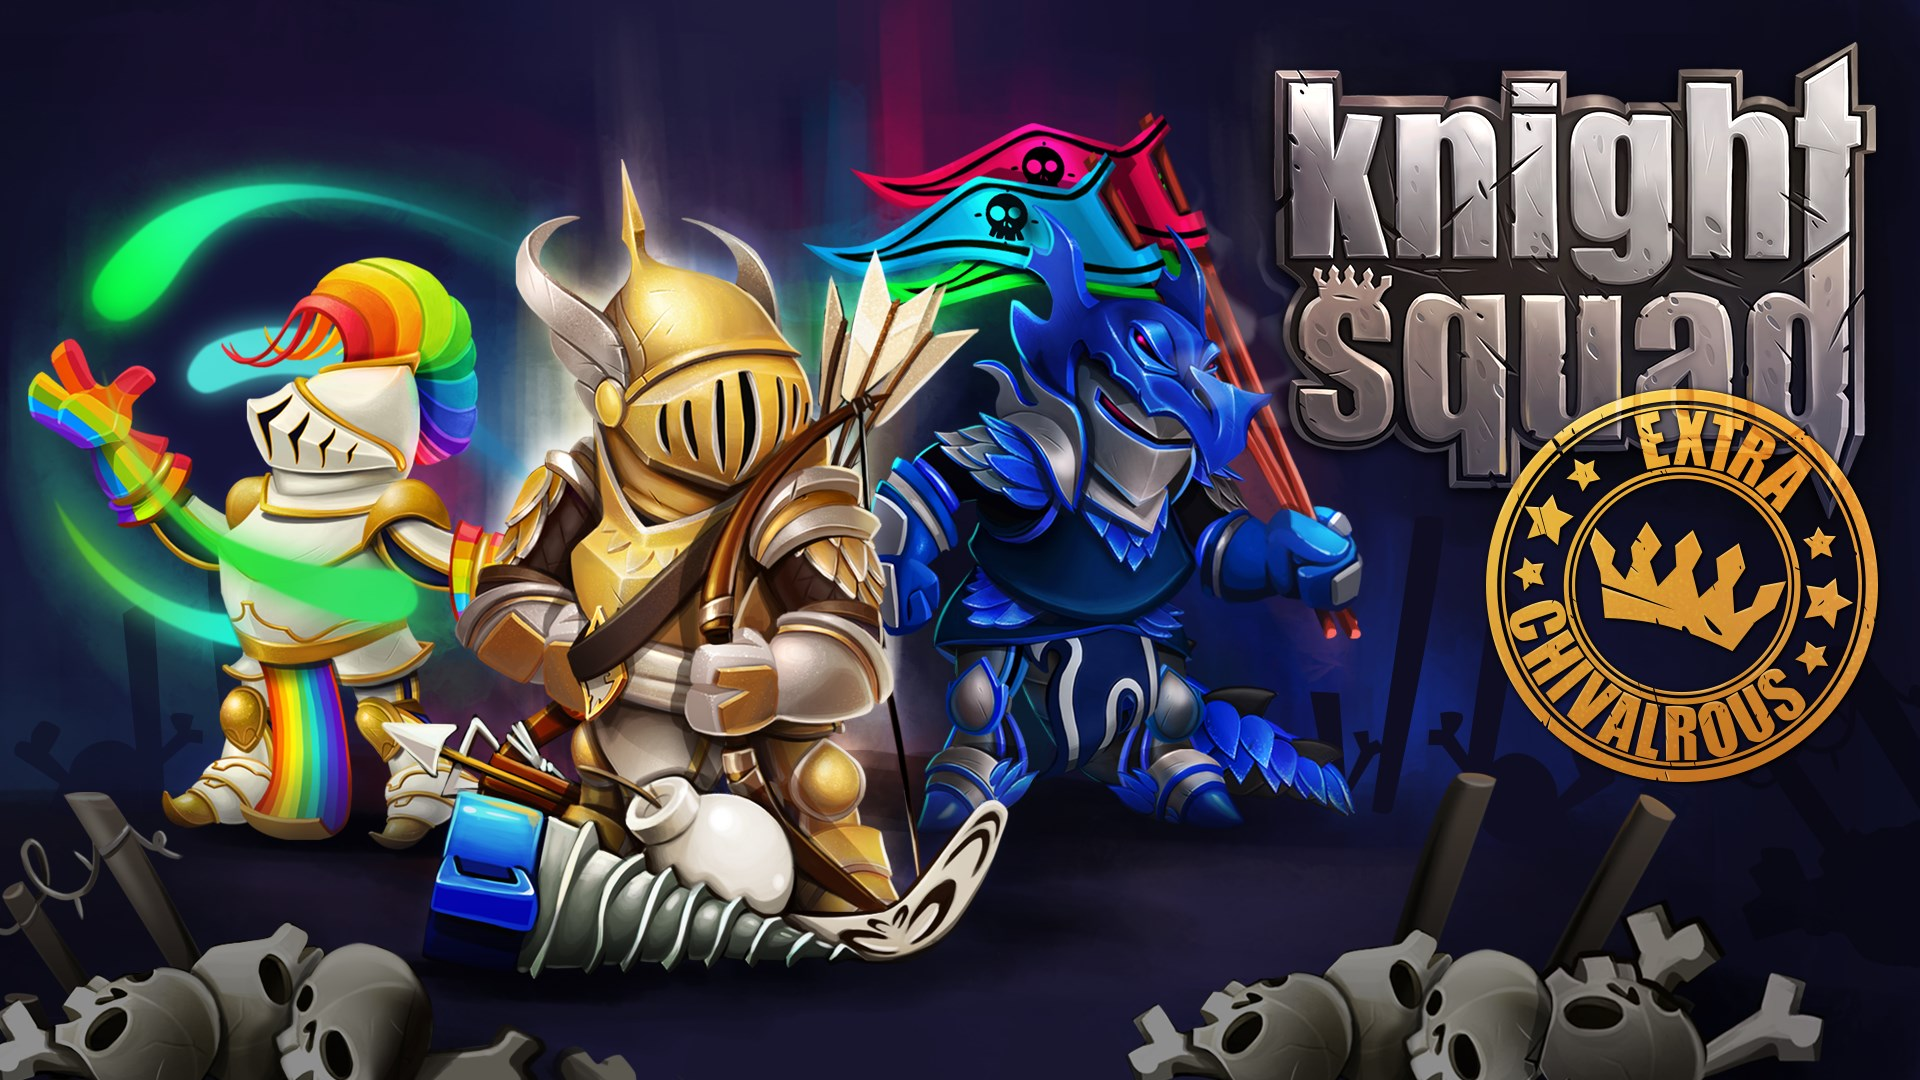 Knight Squad : Extra Chivalrous